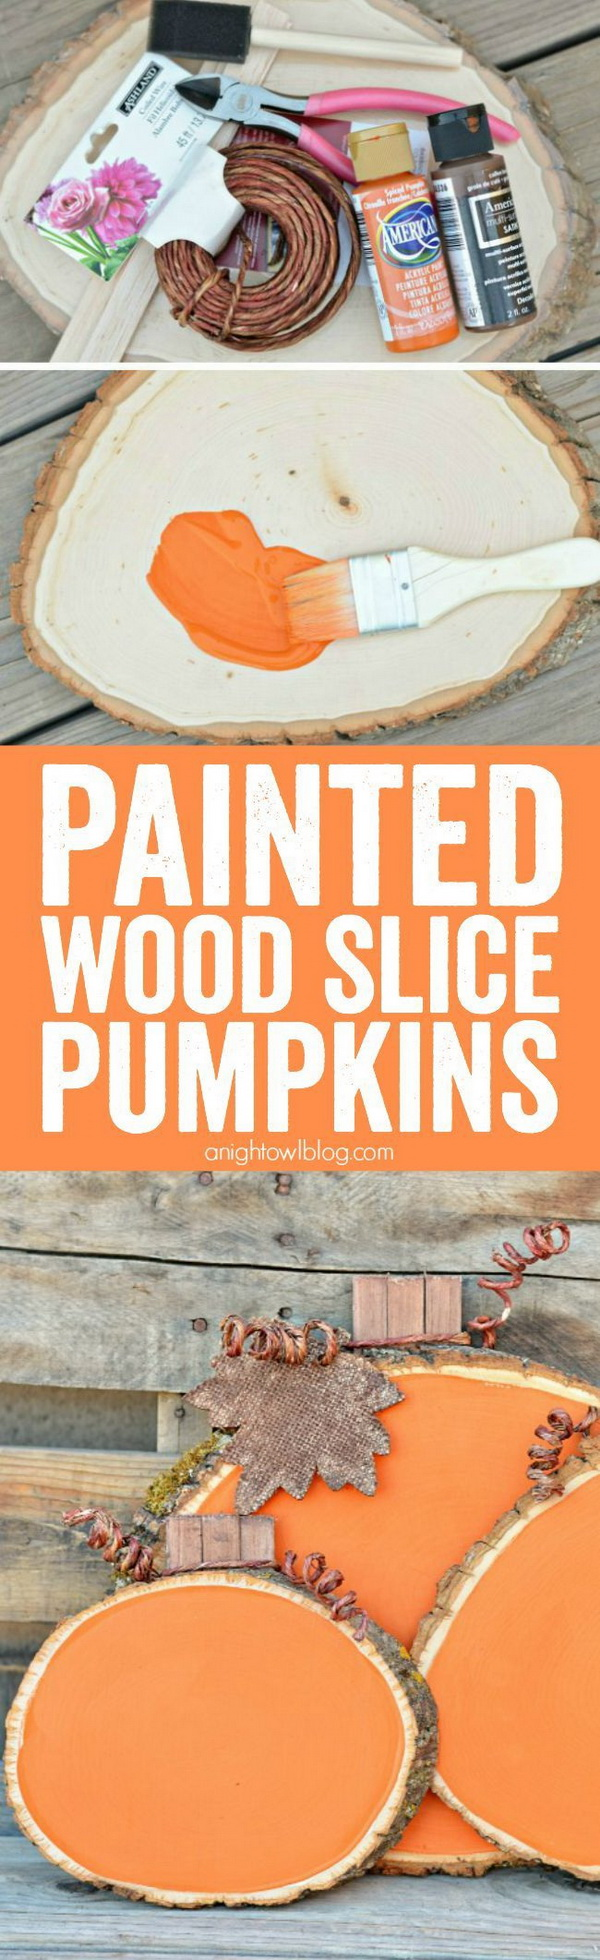 DIY Painted Wood Slice Pumpkins. Create this DIY Apple Chalkboard with wood slices! It would be perfect Fall mantel, wall decorations, even arranged on your party buffet!